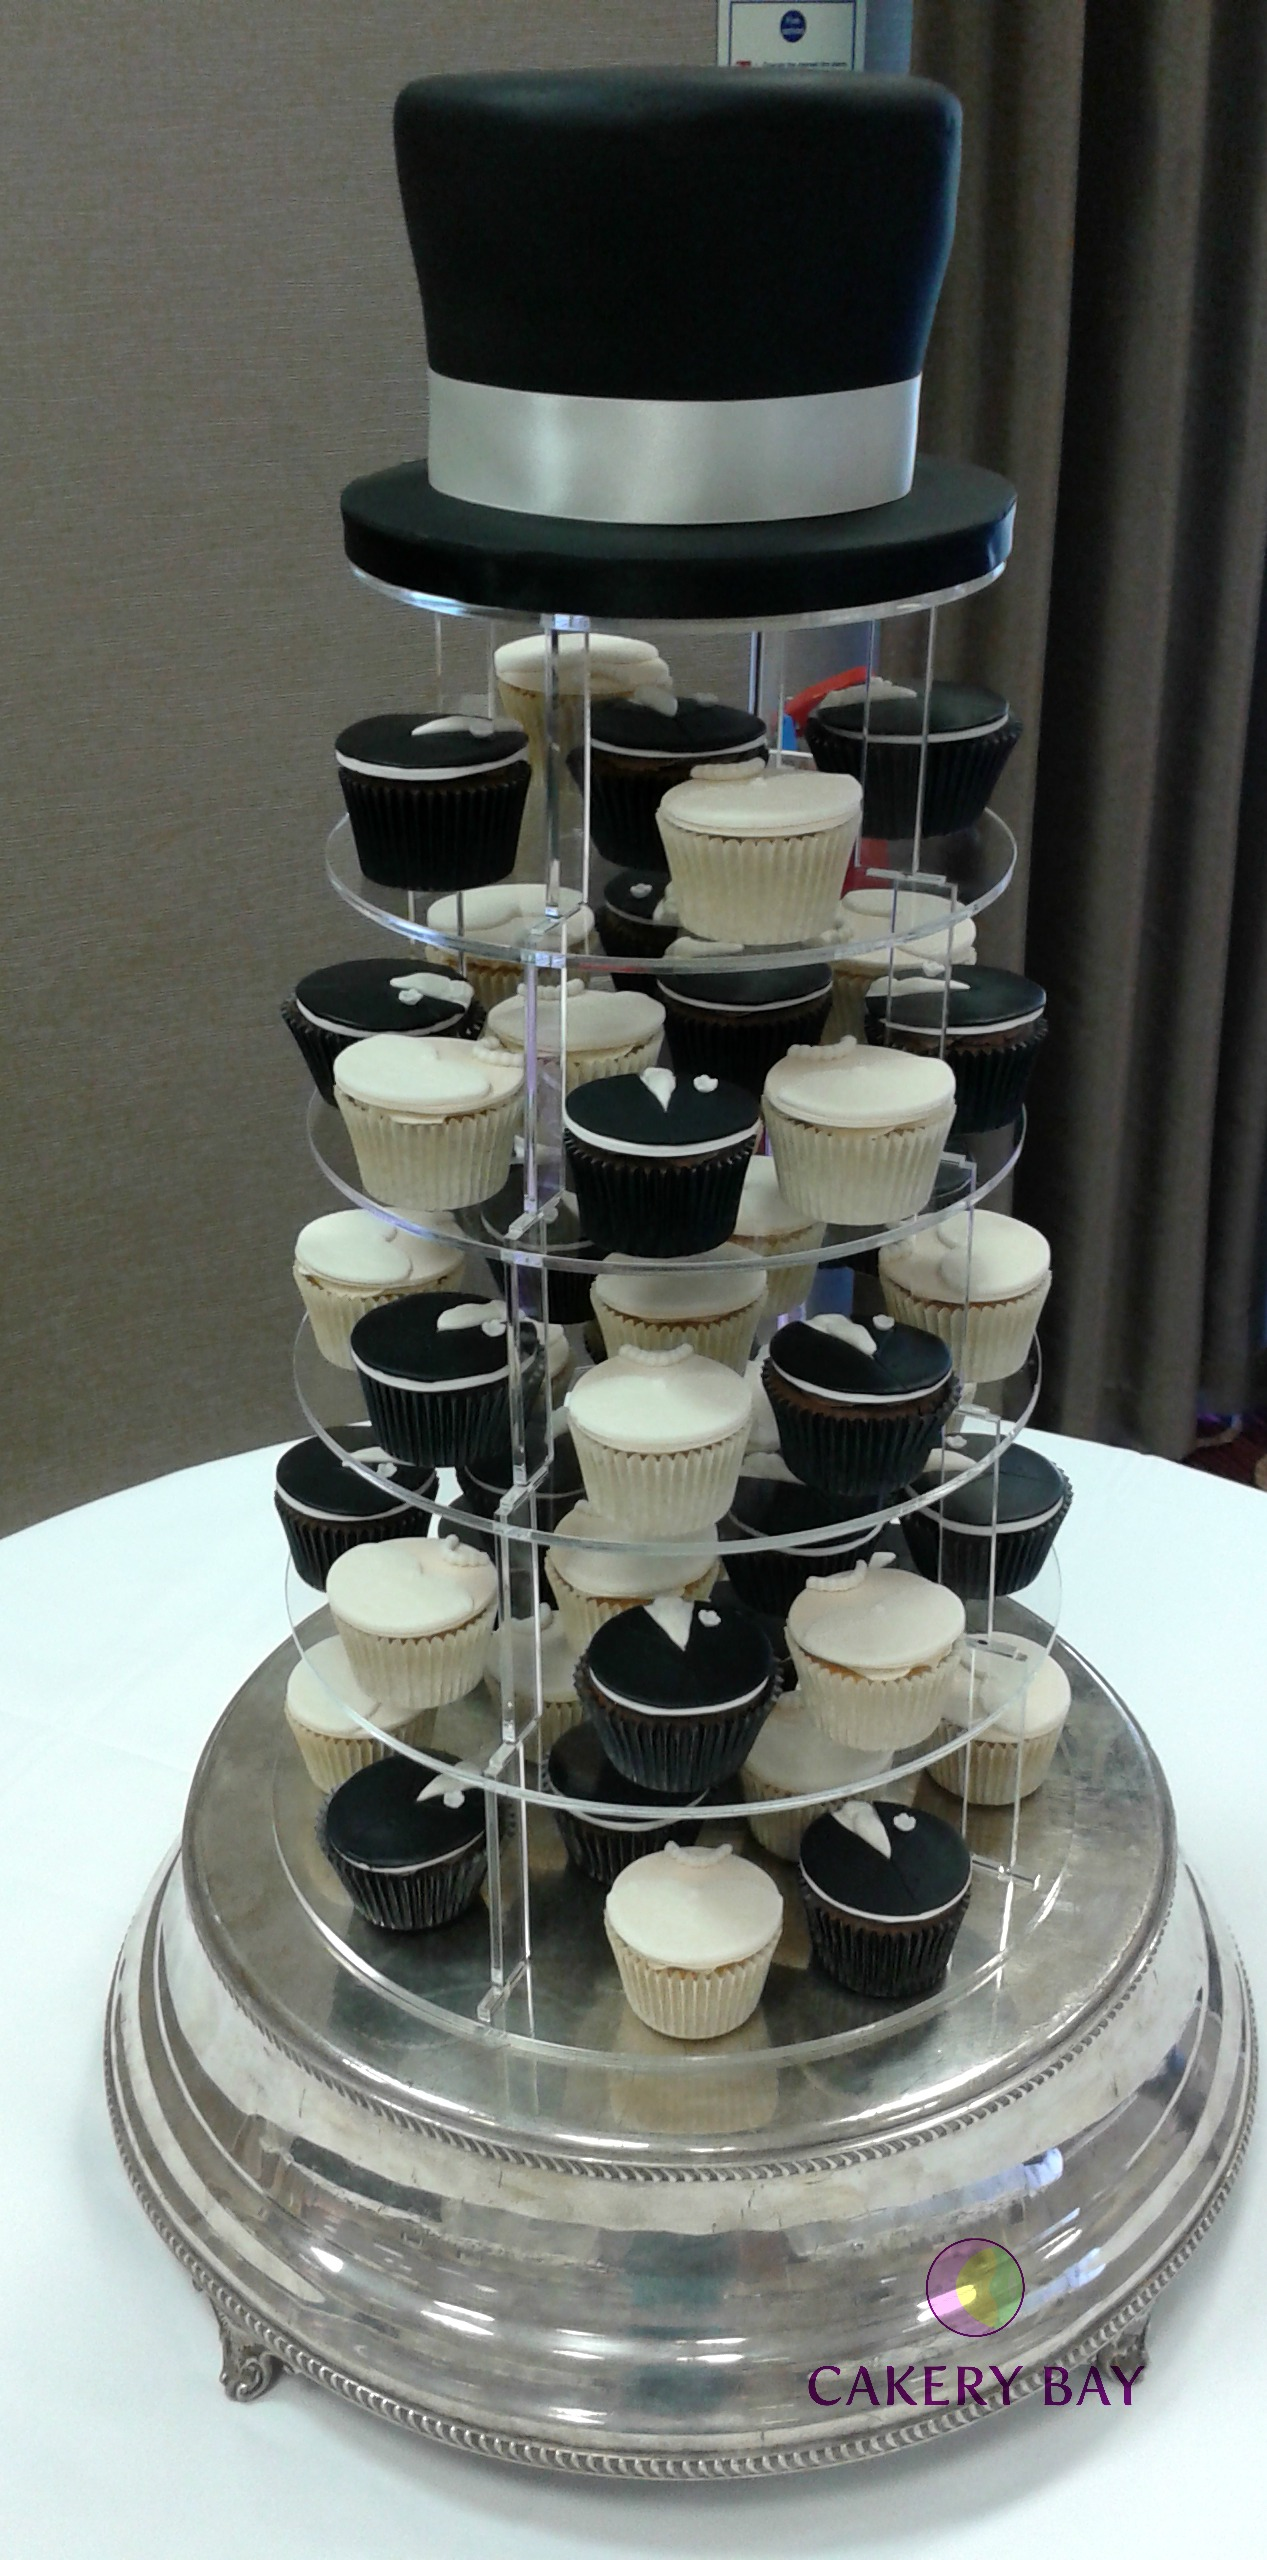 stand hire | cakery bay - discover your dream cake